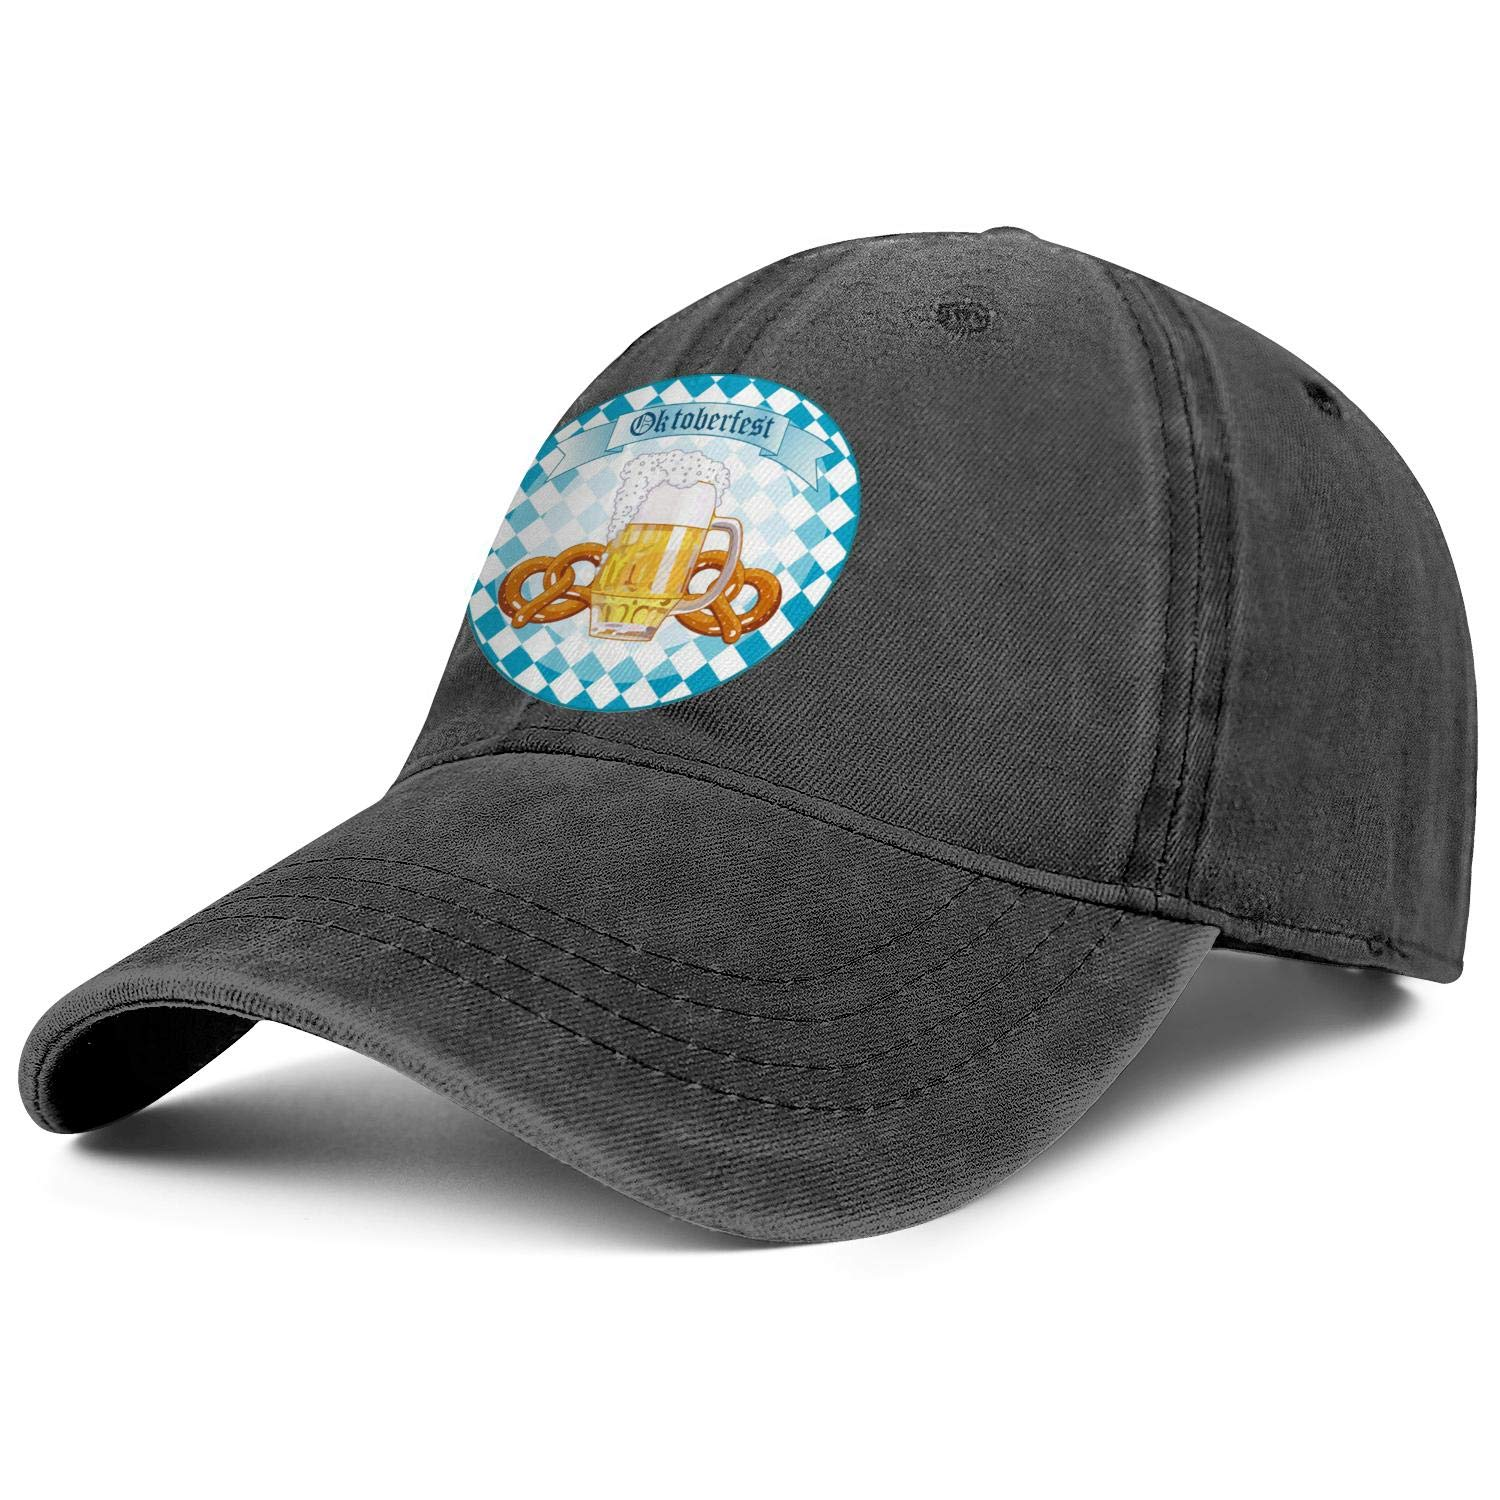 TkYioP Baseball Hats Oktoberfest Celebrations Munich Oktoberfest Beer Bread Adjustable Lightweight Fitted Cap for Women//Men